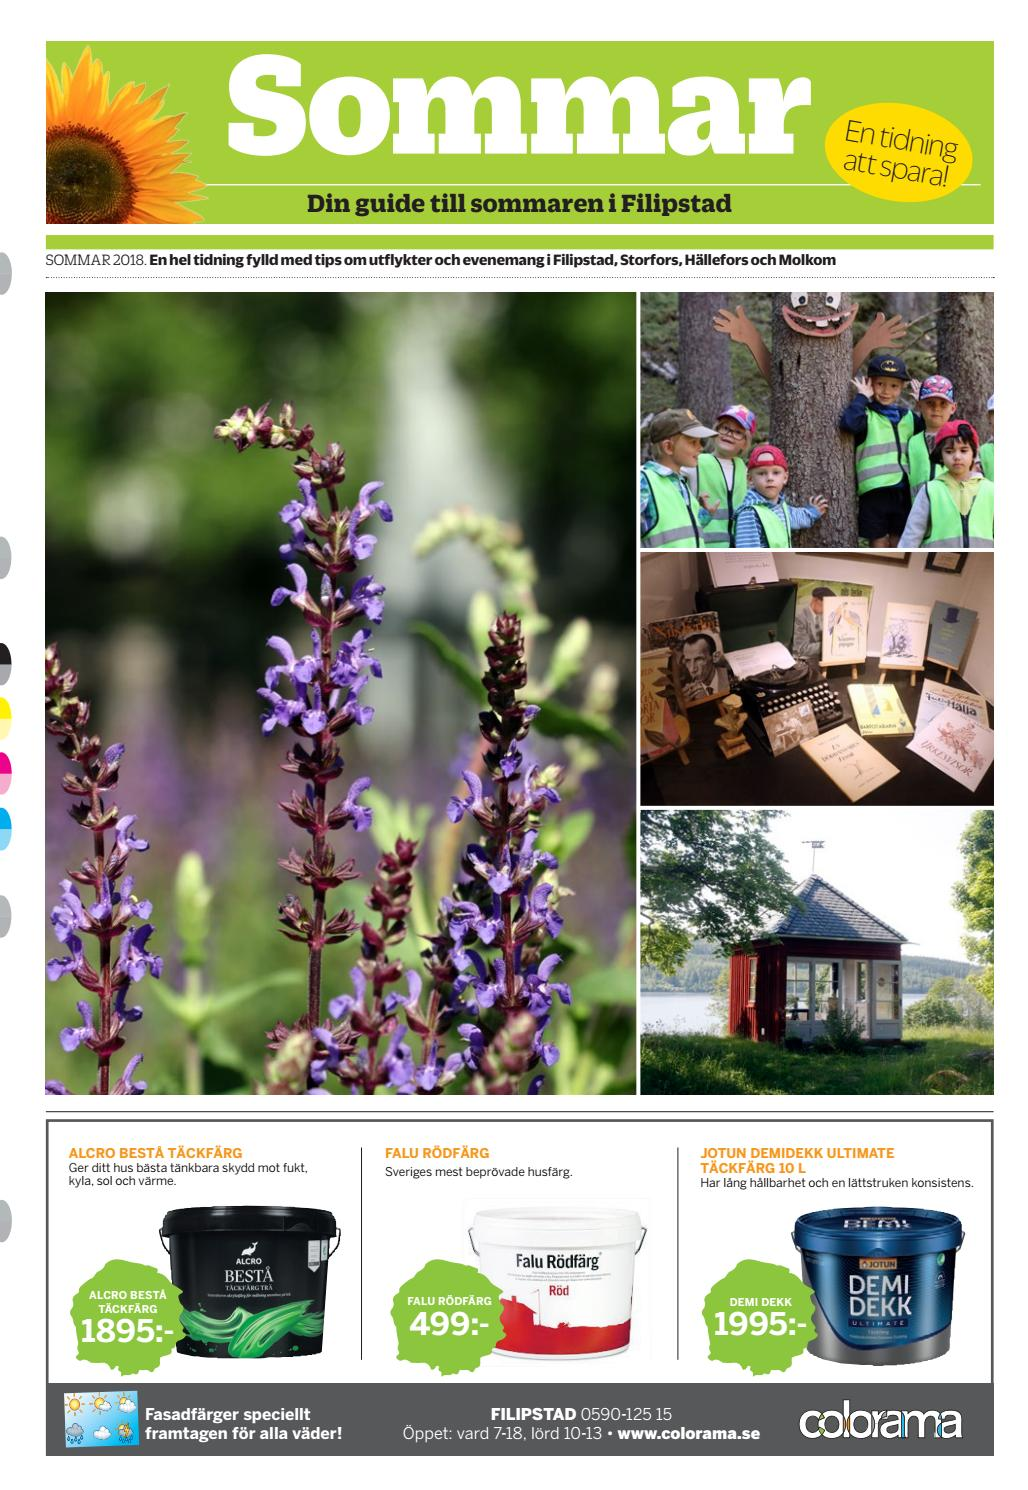 Ft sommar by nwt.se - - issuu 0ee4e2299c895